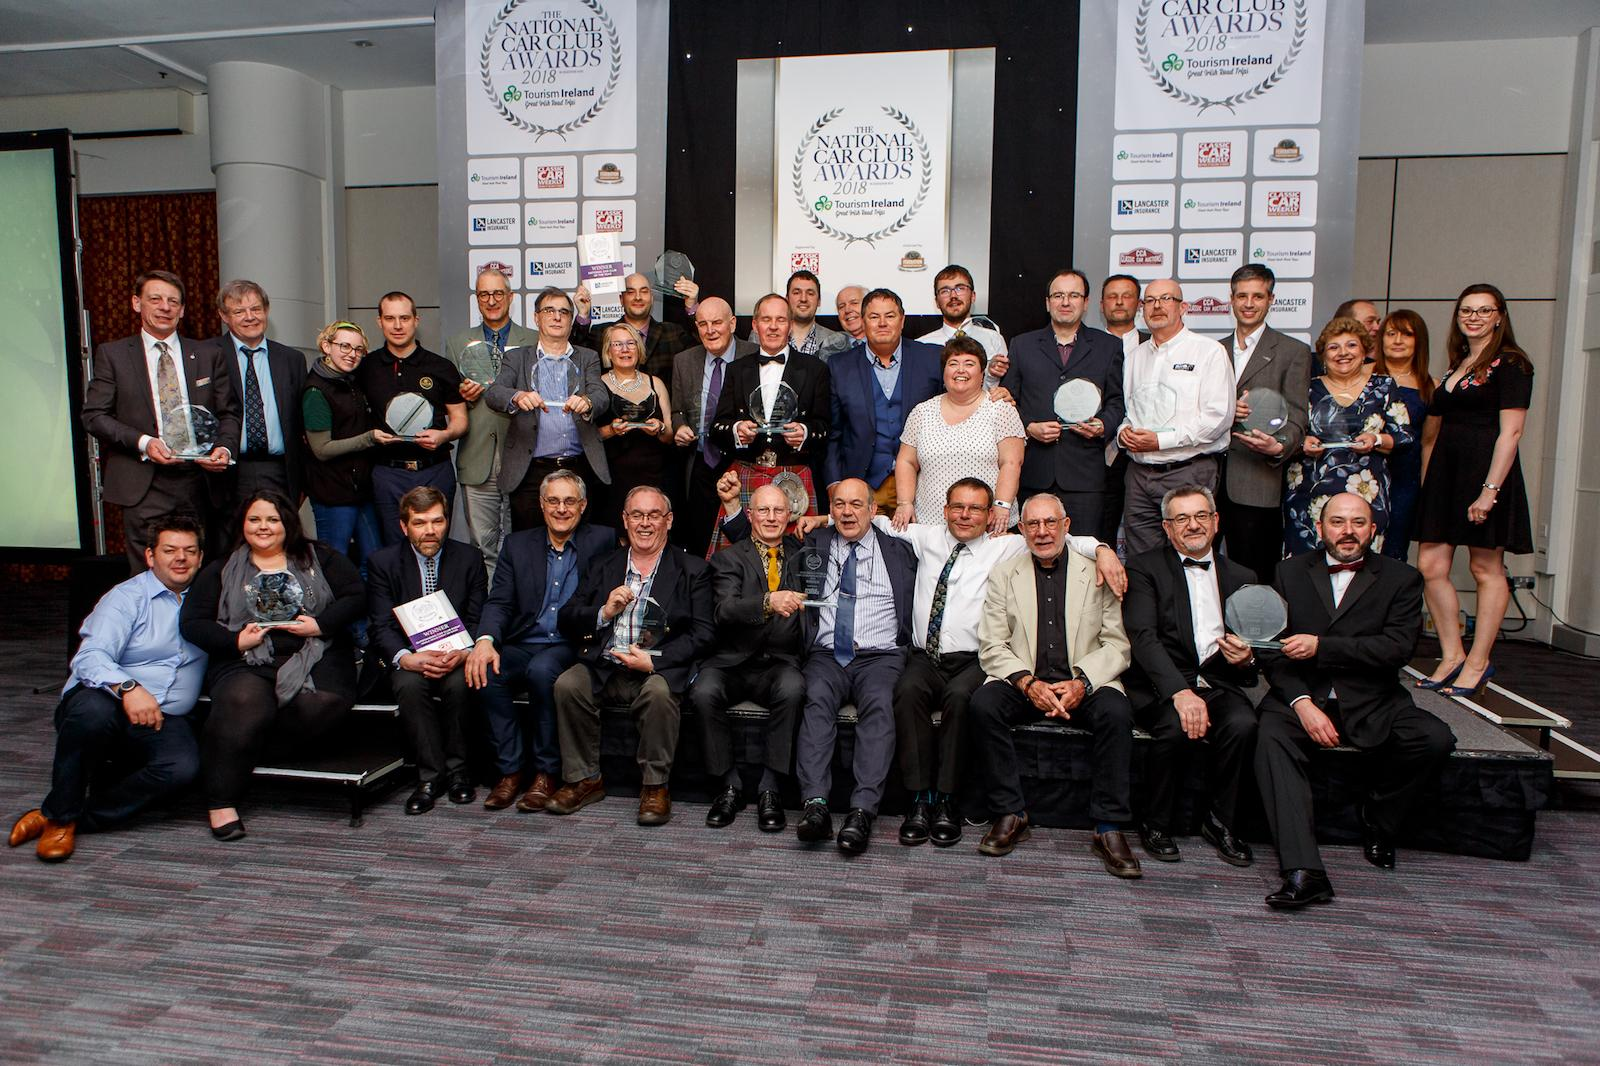 Sir Stirling Moss honoured at National Car Club Awards